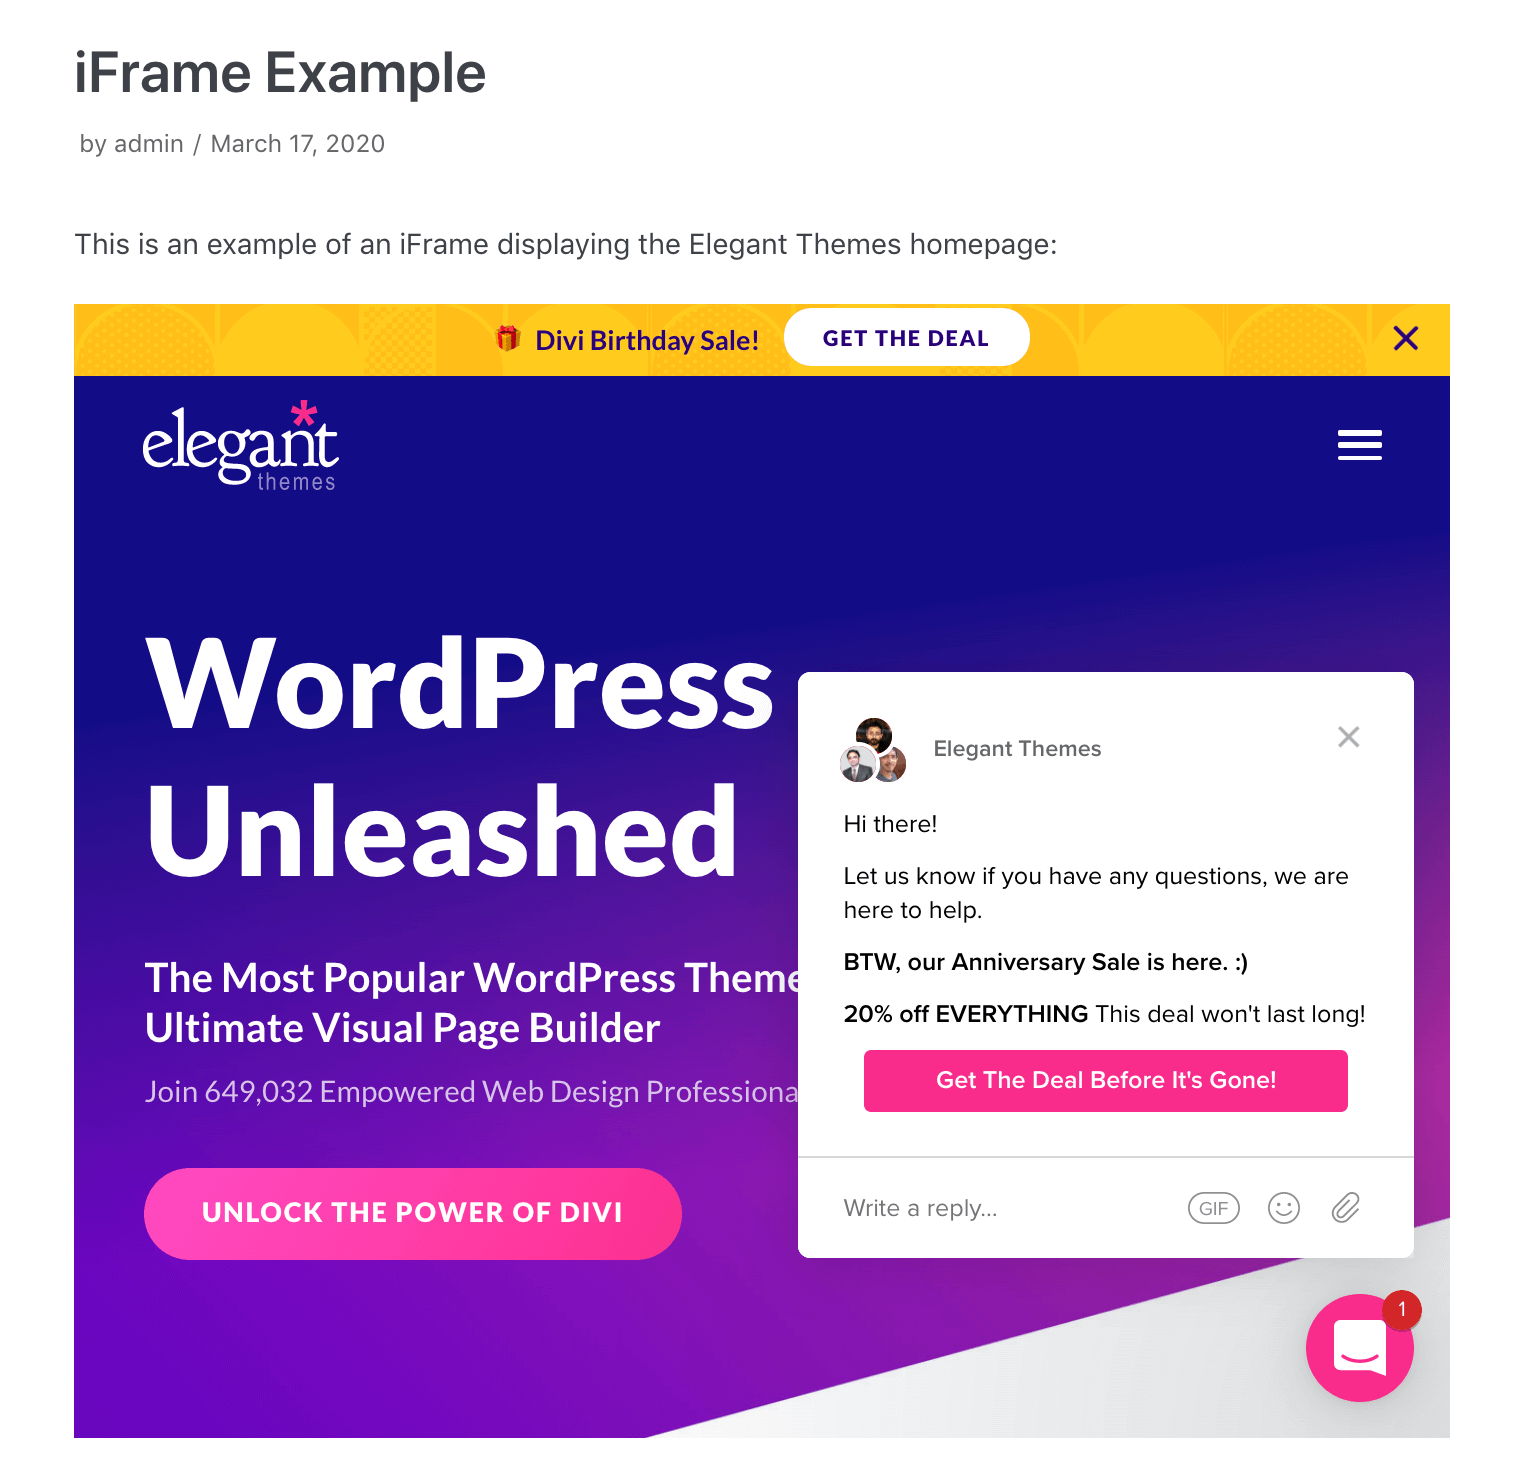 An example of a simple iFrame displaying the Elegant Themes homepage.